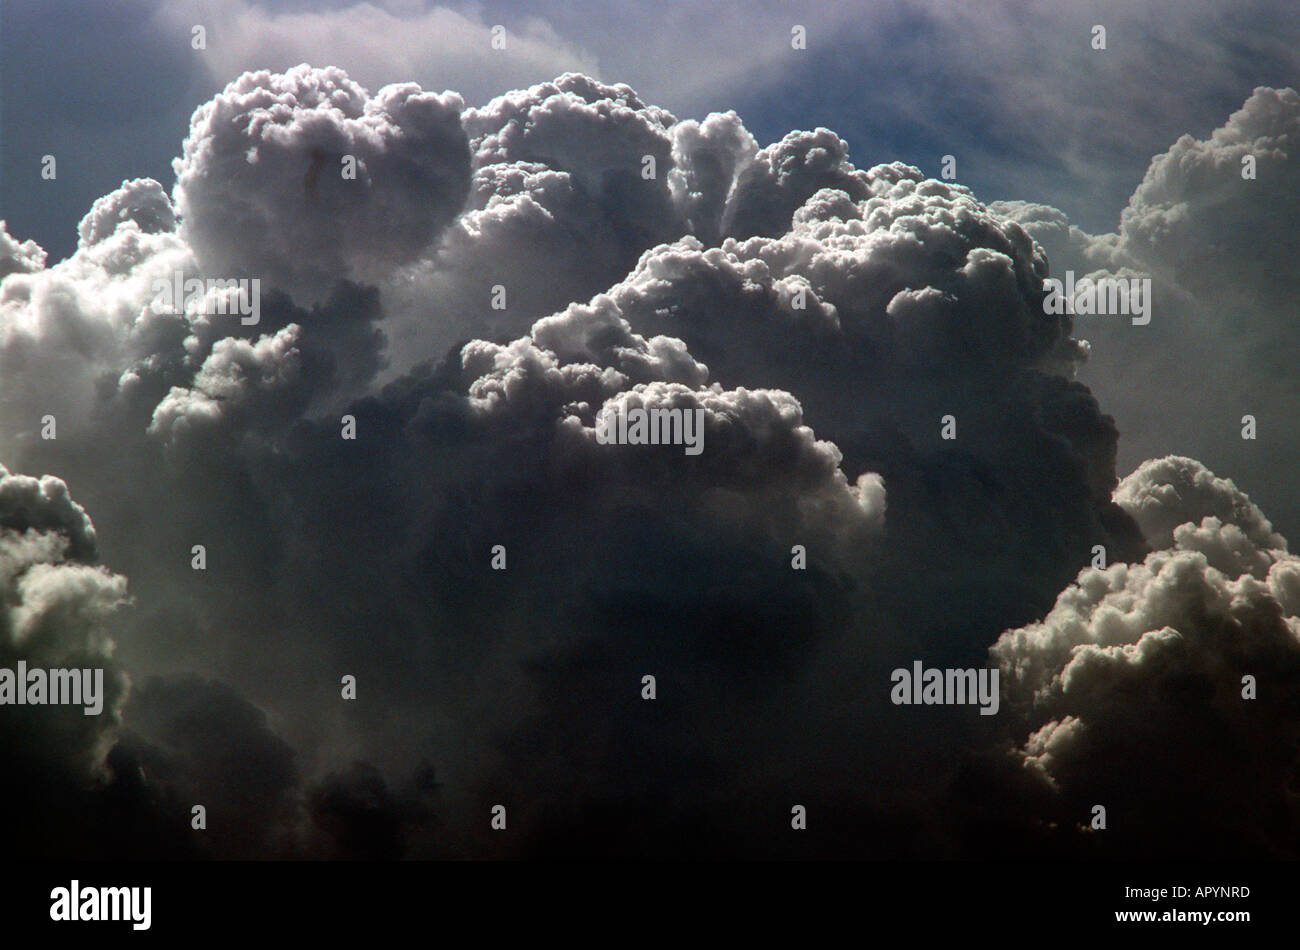 Storm Clouds, Cumulonimbus. Growing - Stock Image